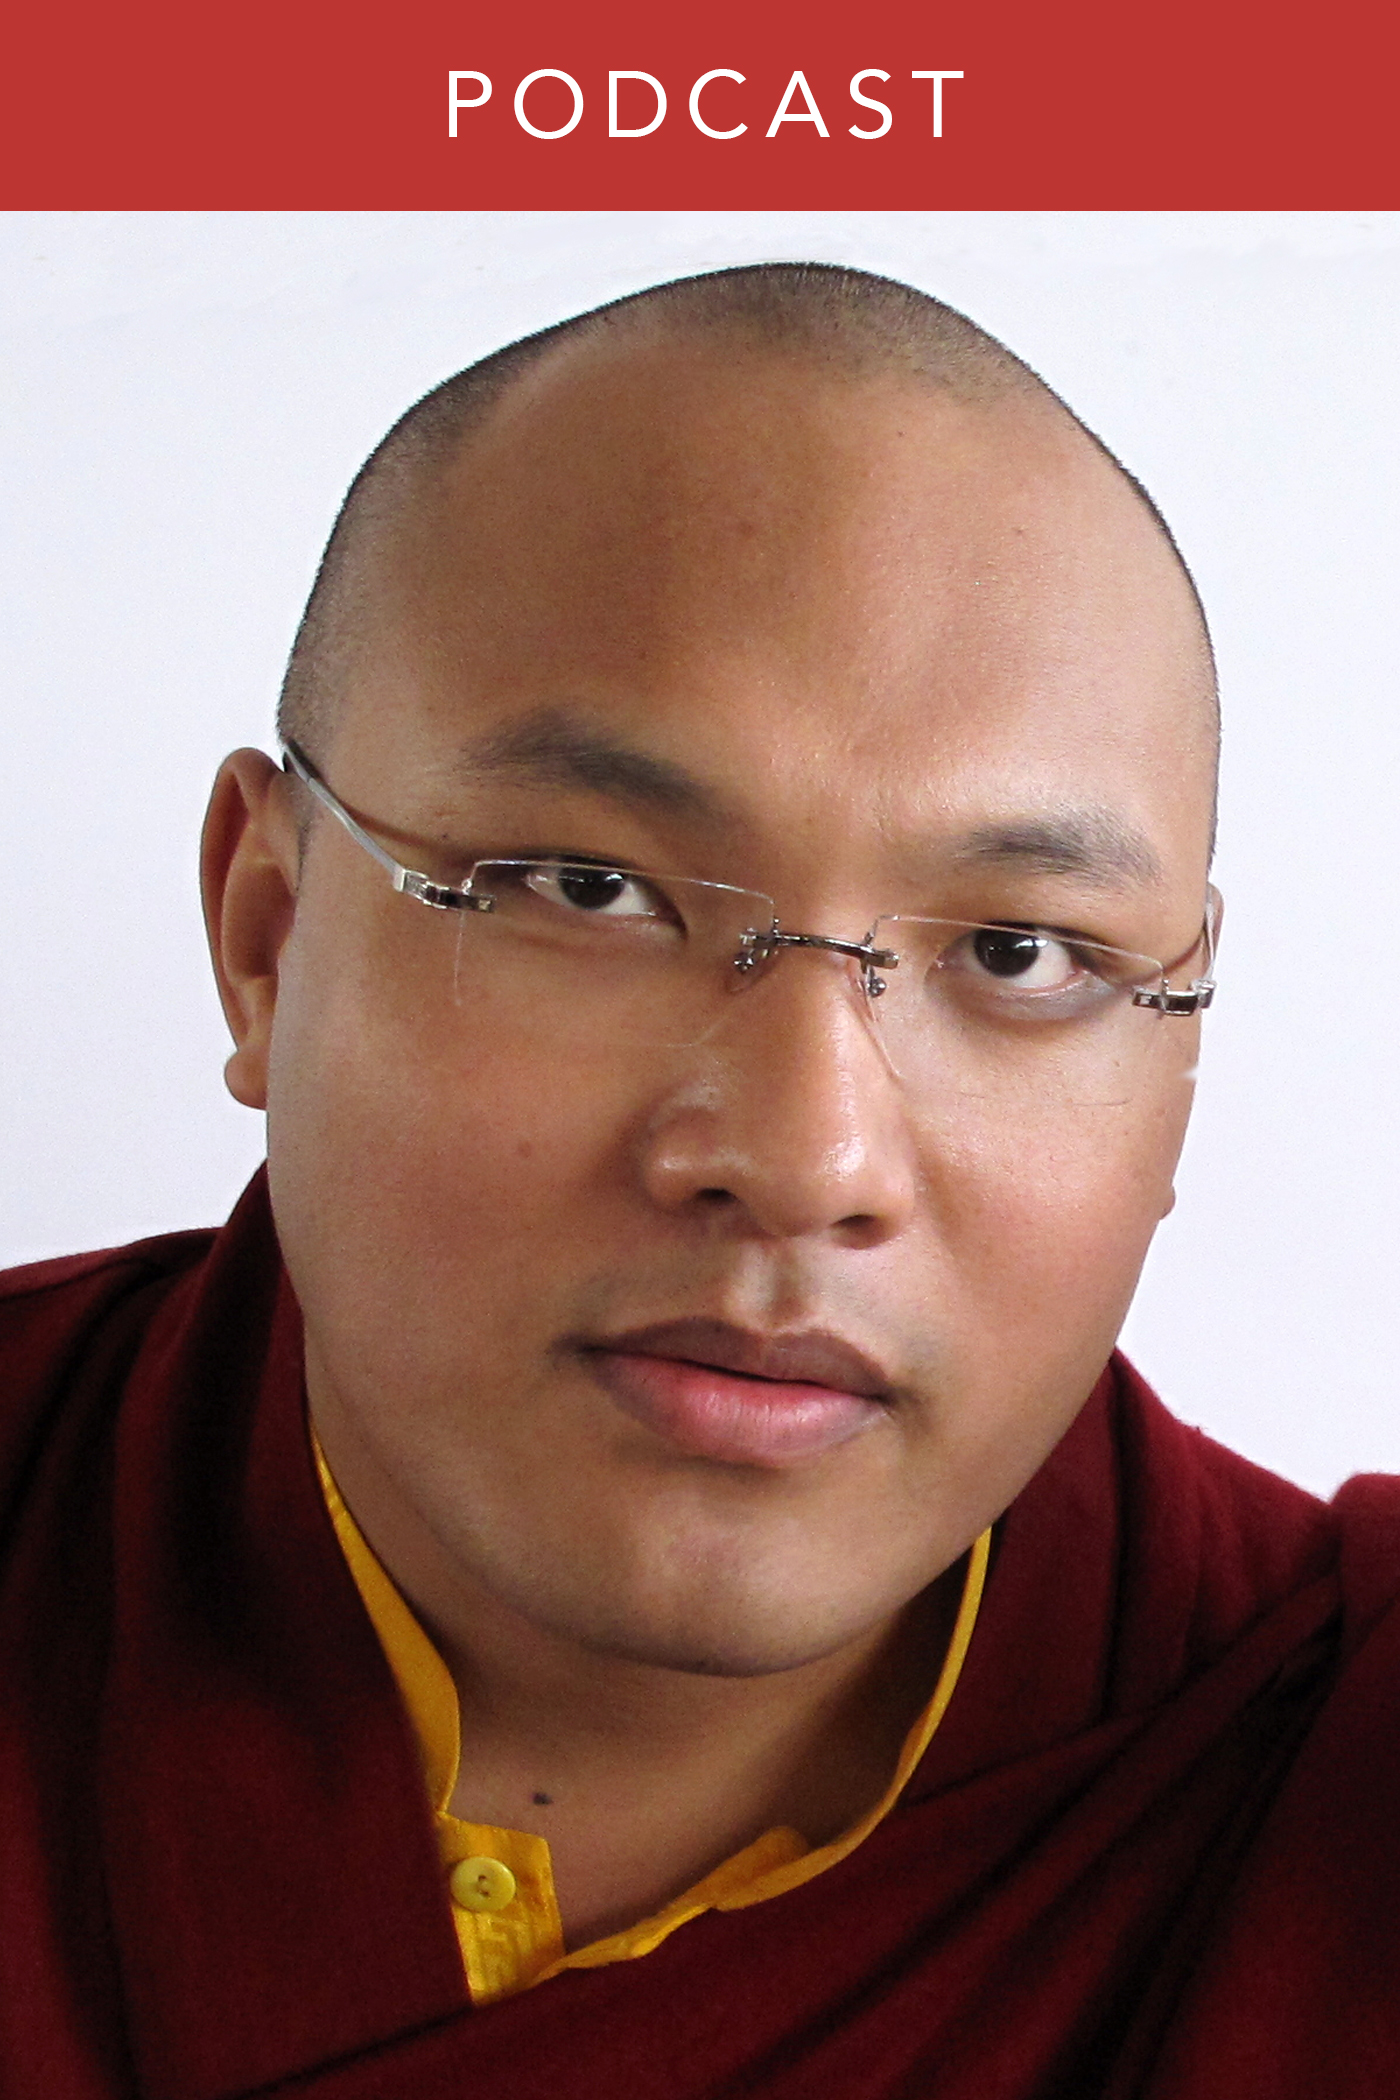 H. H. Karmapa: Vegetarianism, Online Education and Nuns' Ordination